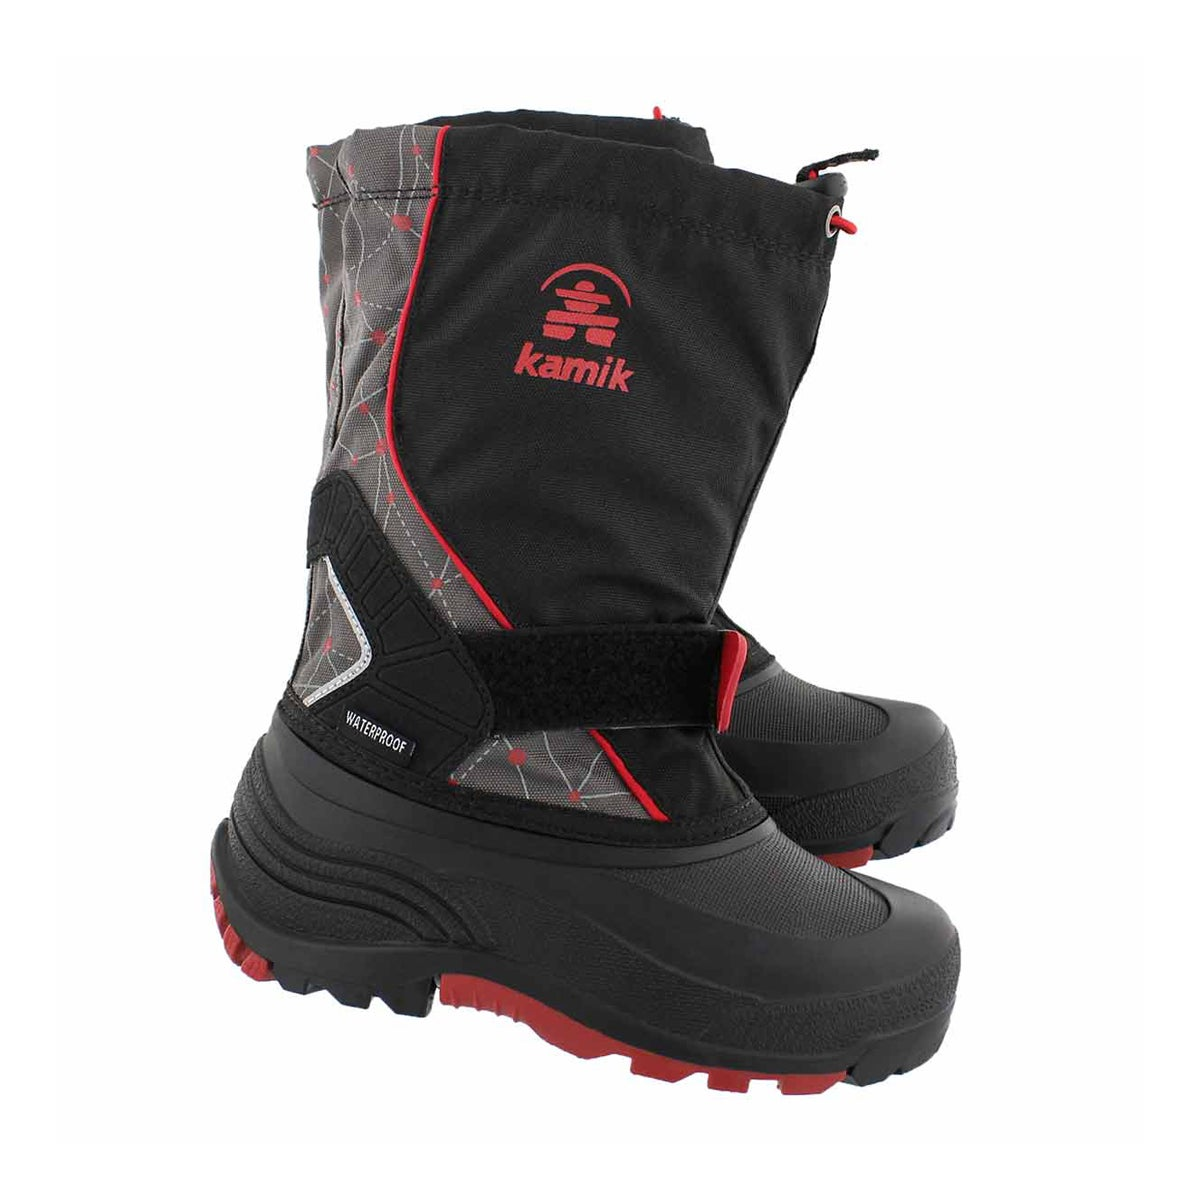 Bys Sleet 2 blk/red pull on winter boot